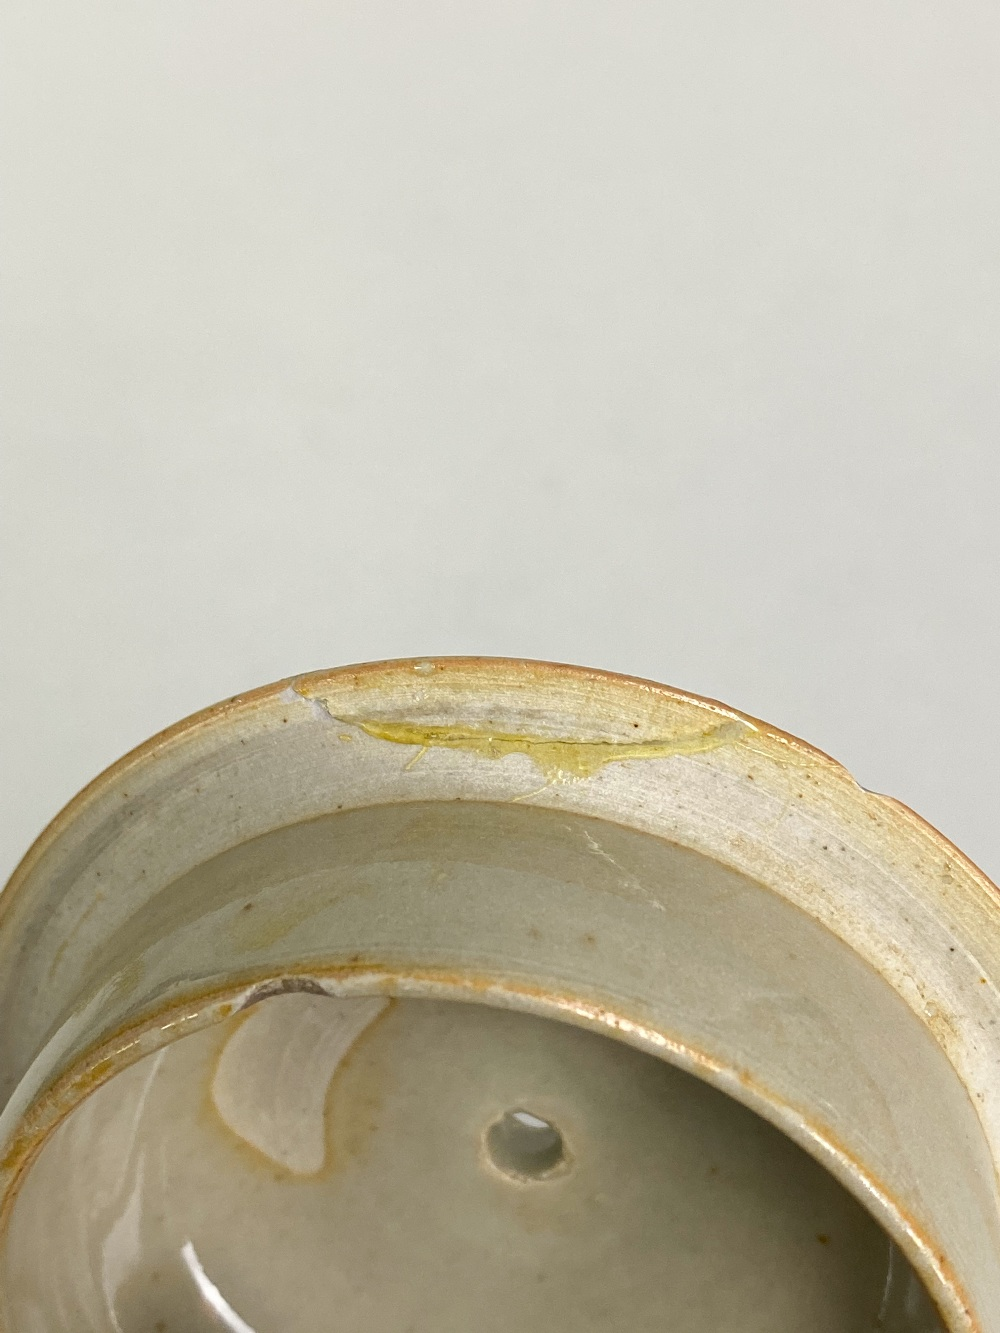 HARRY DAVIS (1910-1986) & MAY DAVIS (1914-1998) for Crowan Pottery; a stoneware coffee pot with - Image 9 of 9